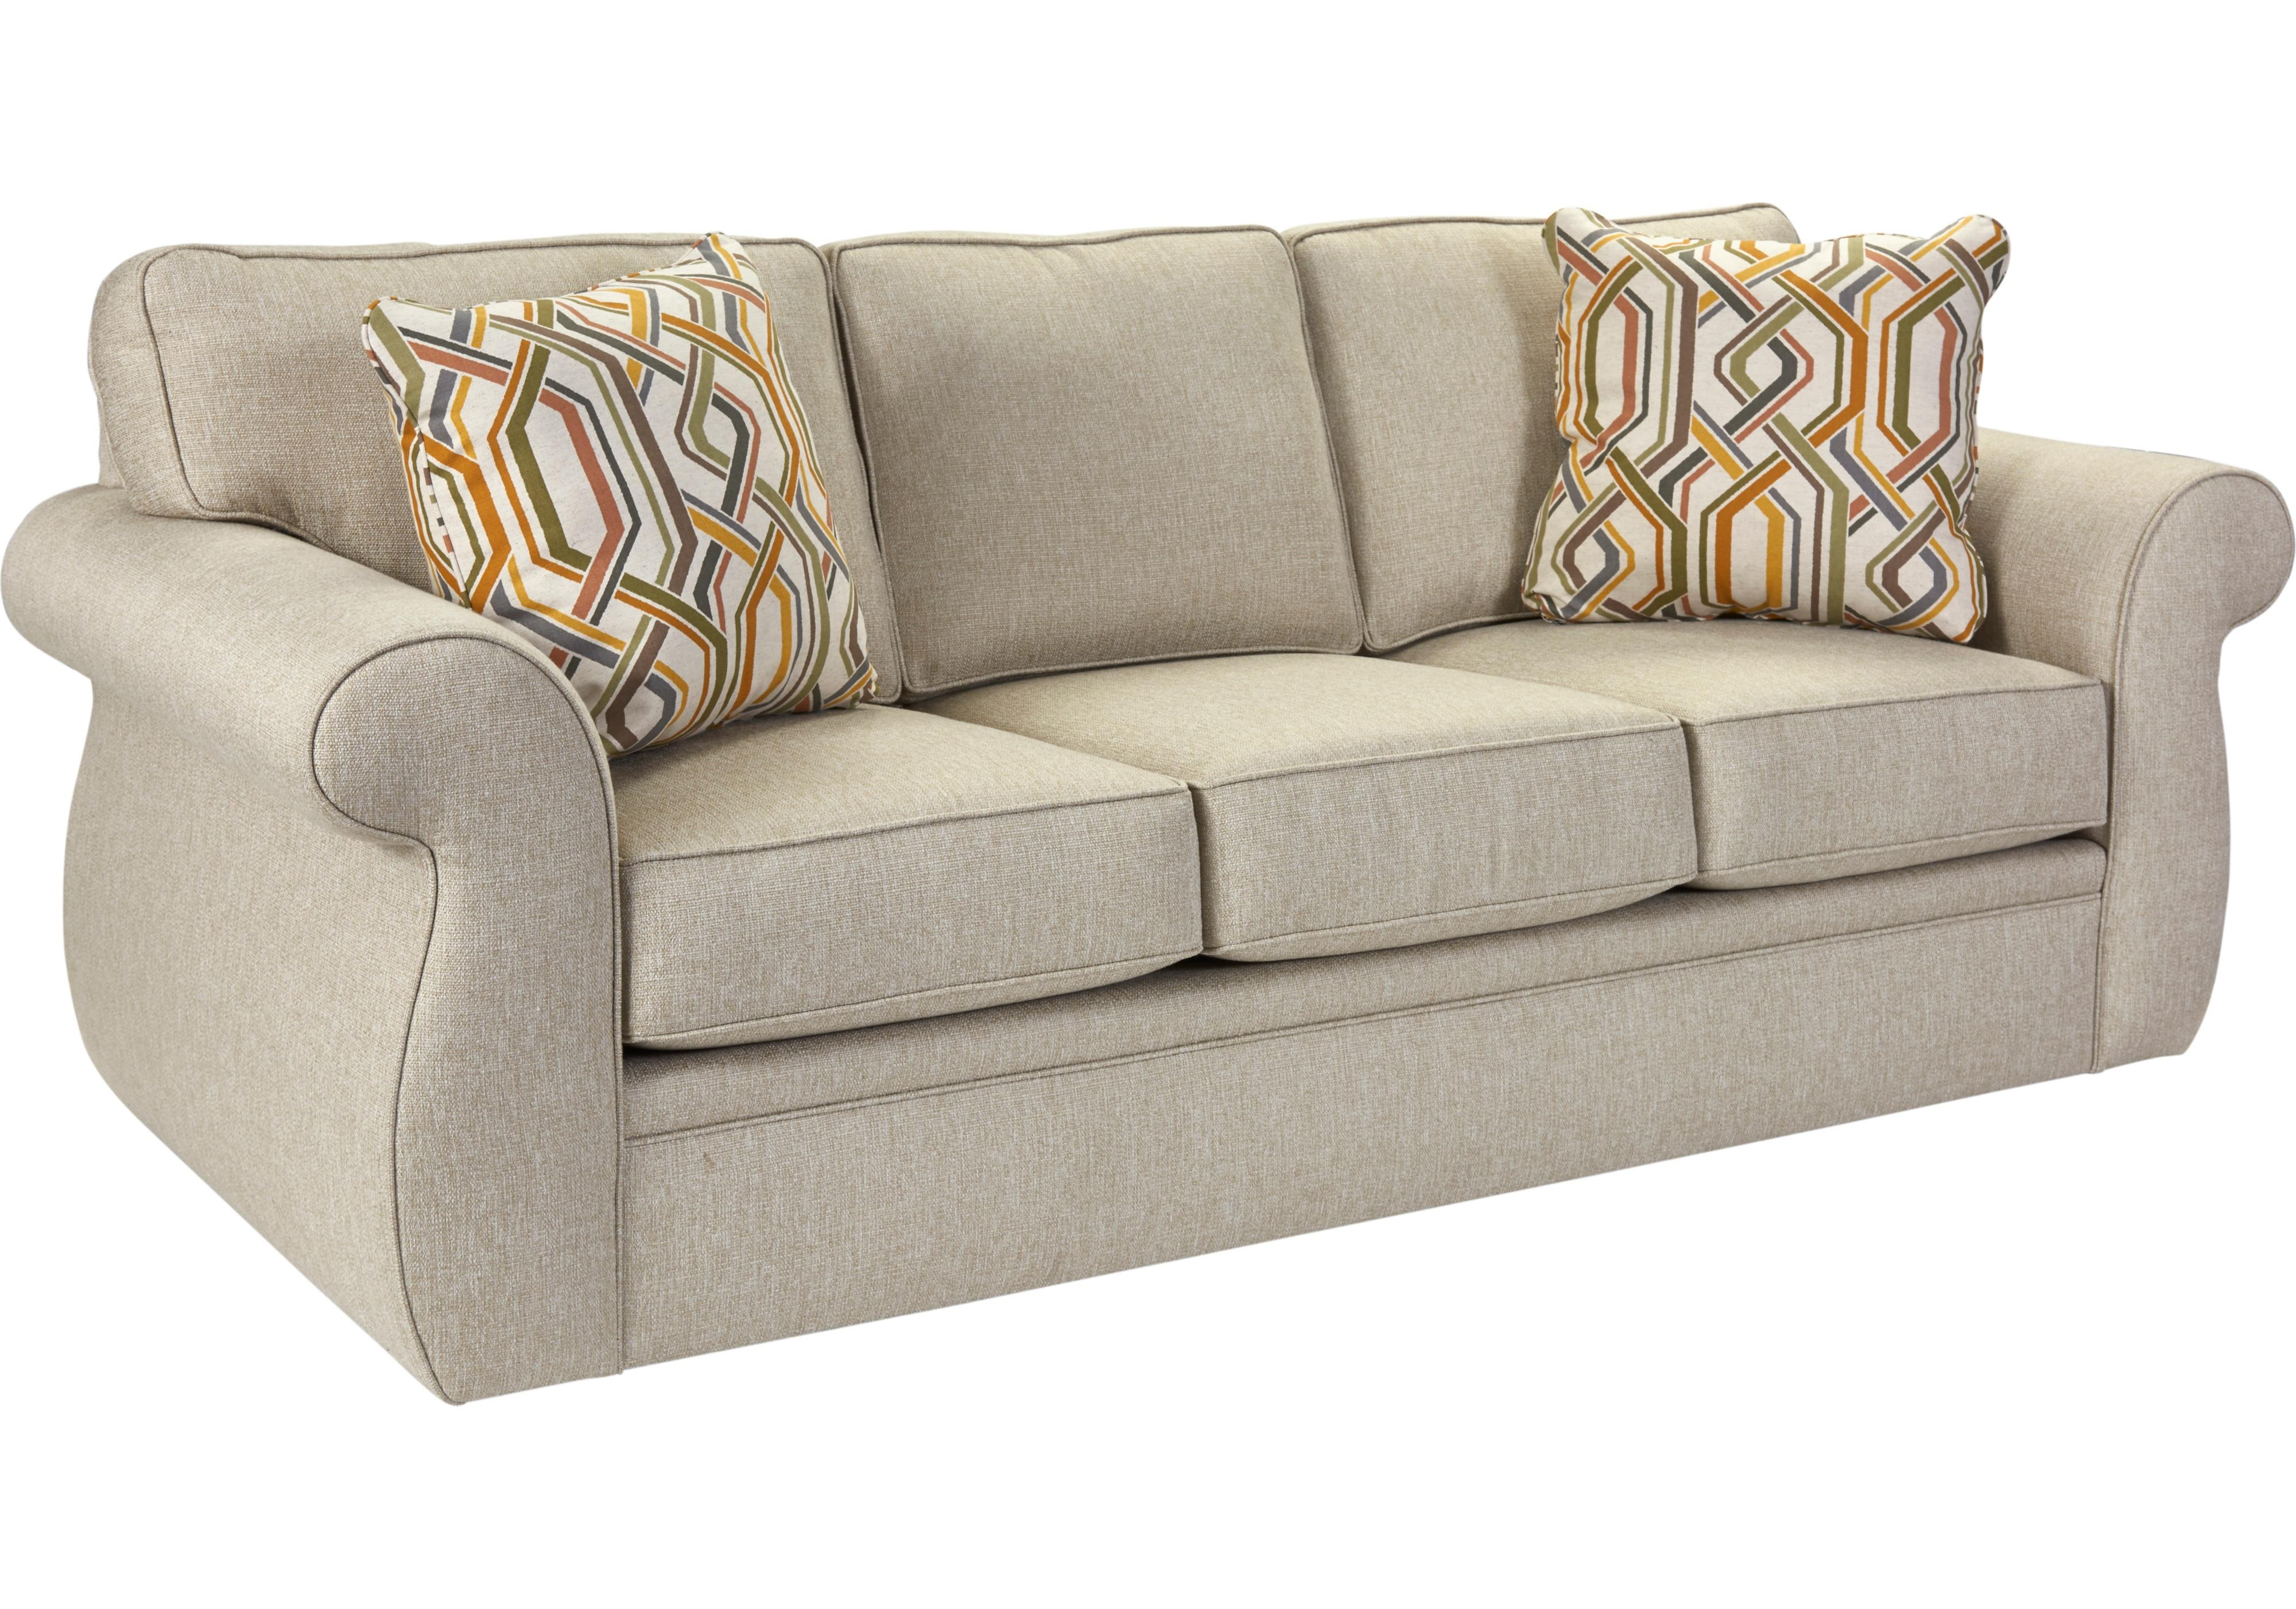 Broyhill Furniture Veronica Sofa Item Number 6180 3 4279 80